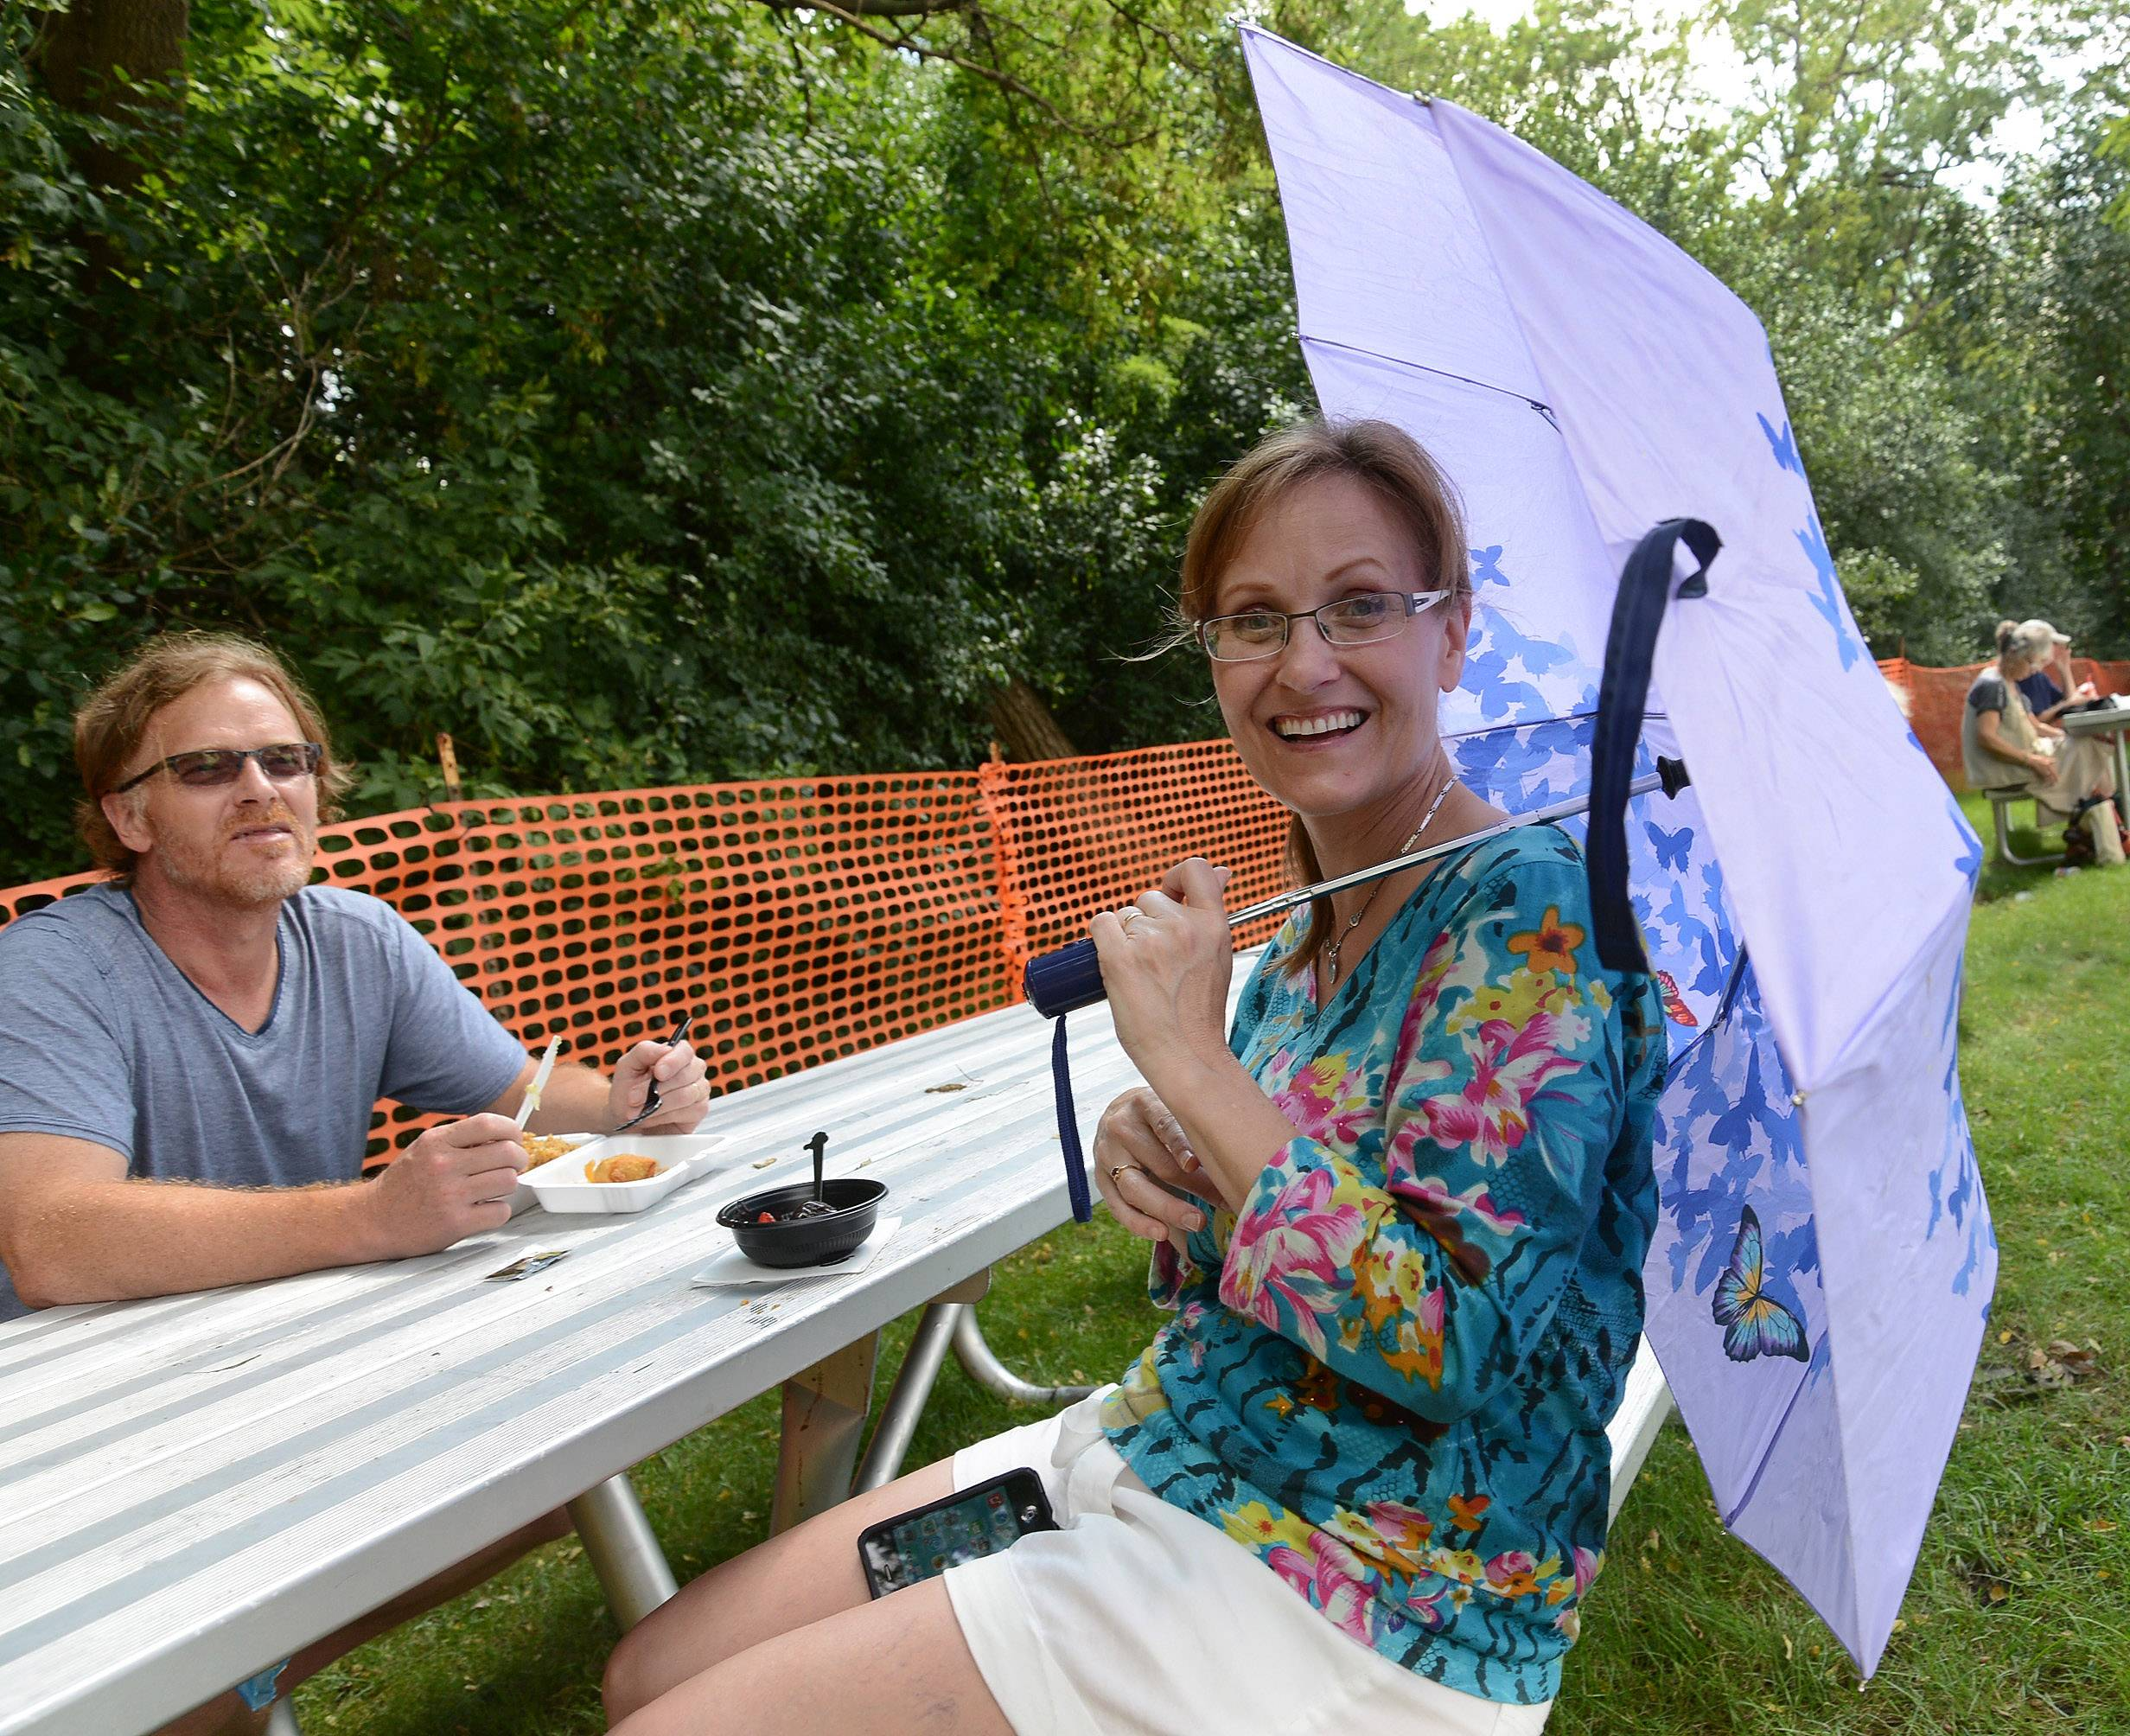 Kathi and Don Pasler of Mount Prospect enjoy a quiet place to have lunch on the first day of Schaumburg's 44th annual Septemberfest.